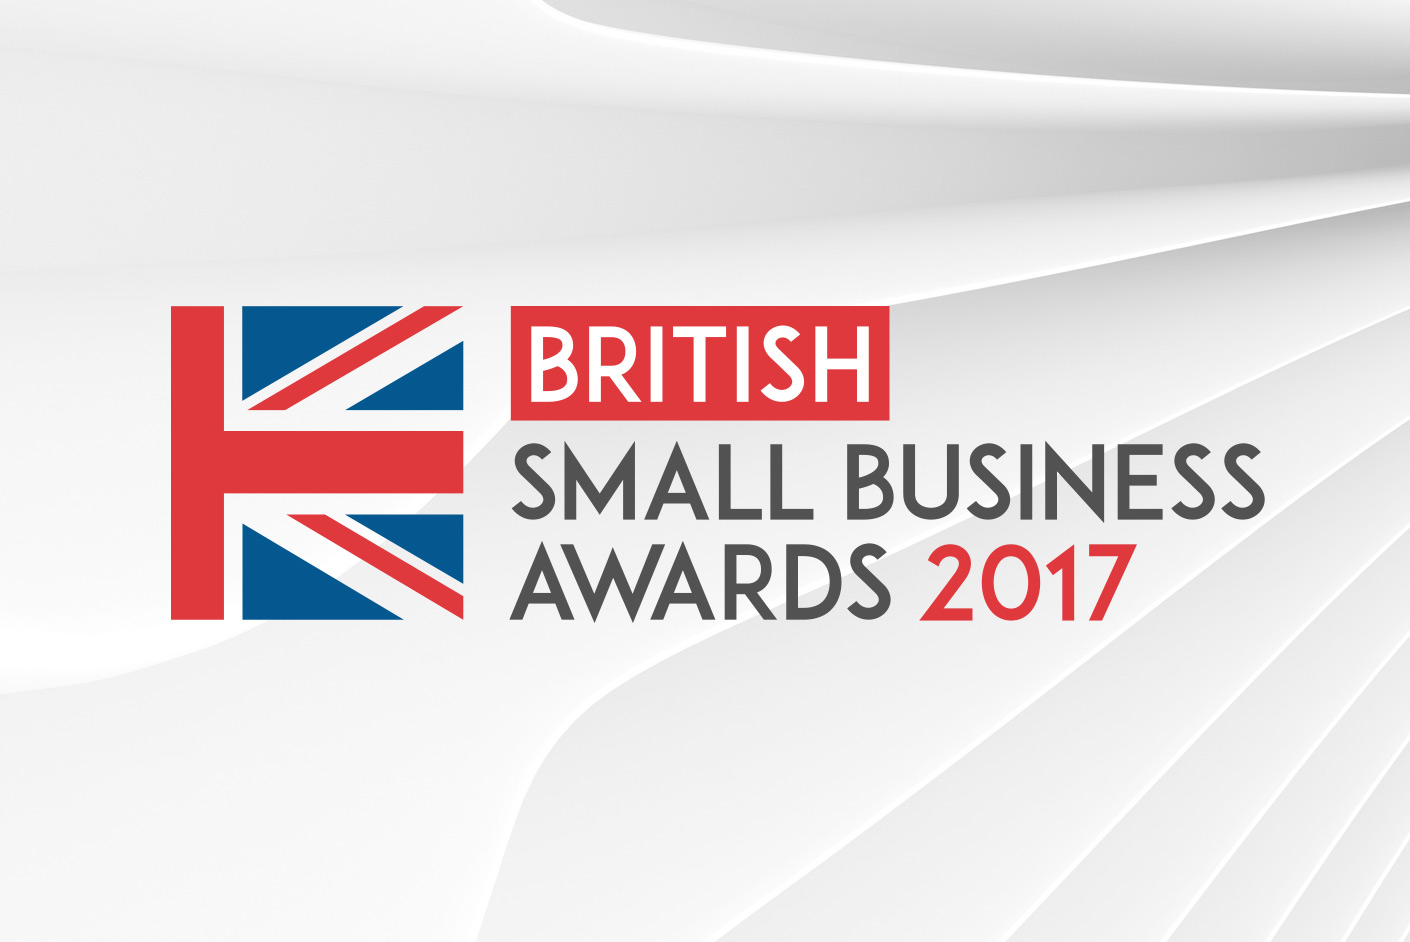 The British Small Business Awards event